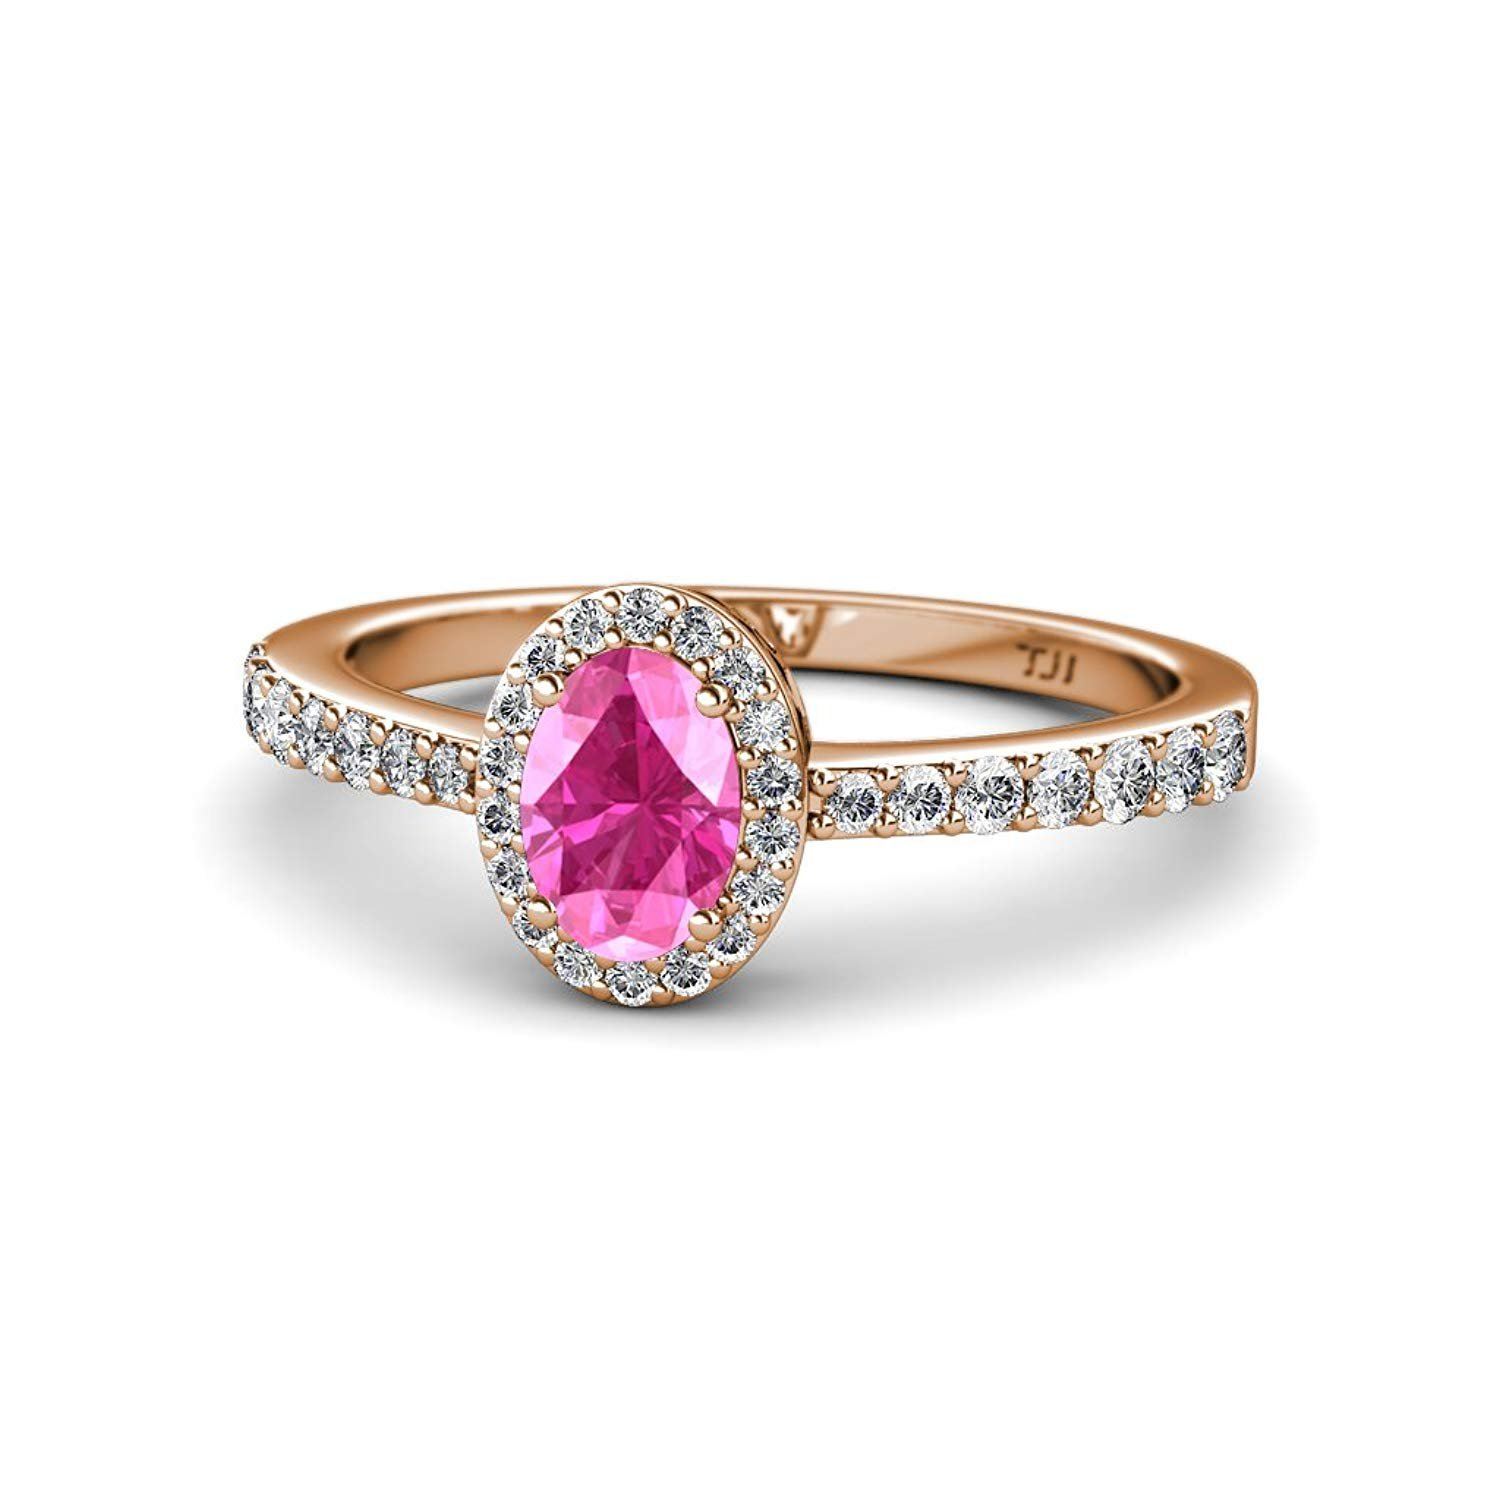 Oval 7x5mm Pink Sapphire and Diamond Halo Engagement Ring 1.43 Carat tw in 14K Rose Gold.size 7.25 by TriJewels